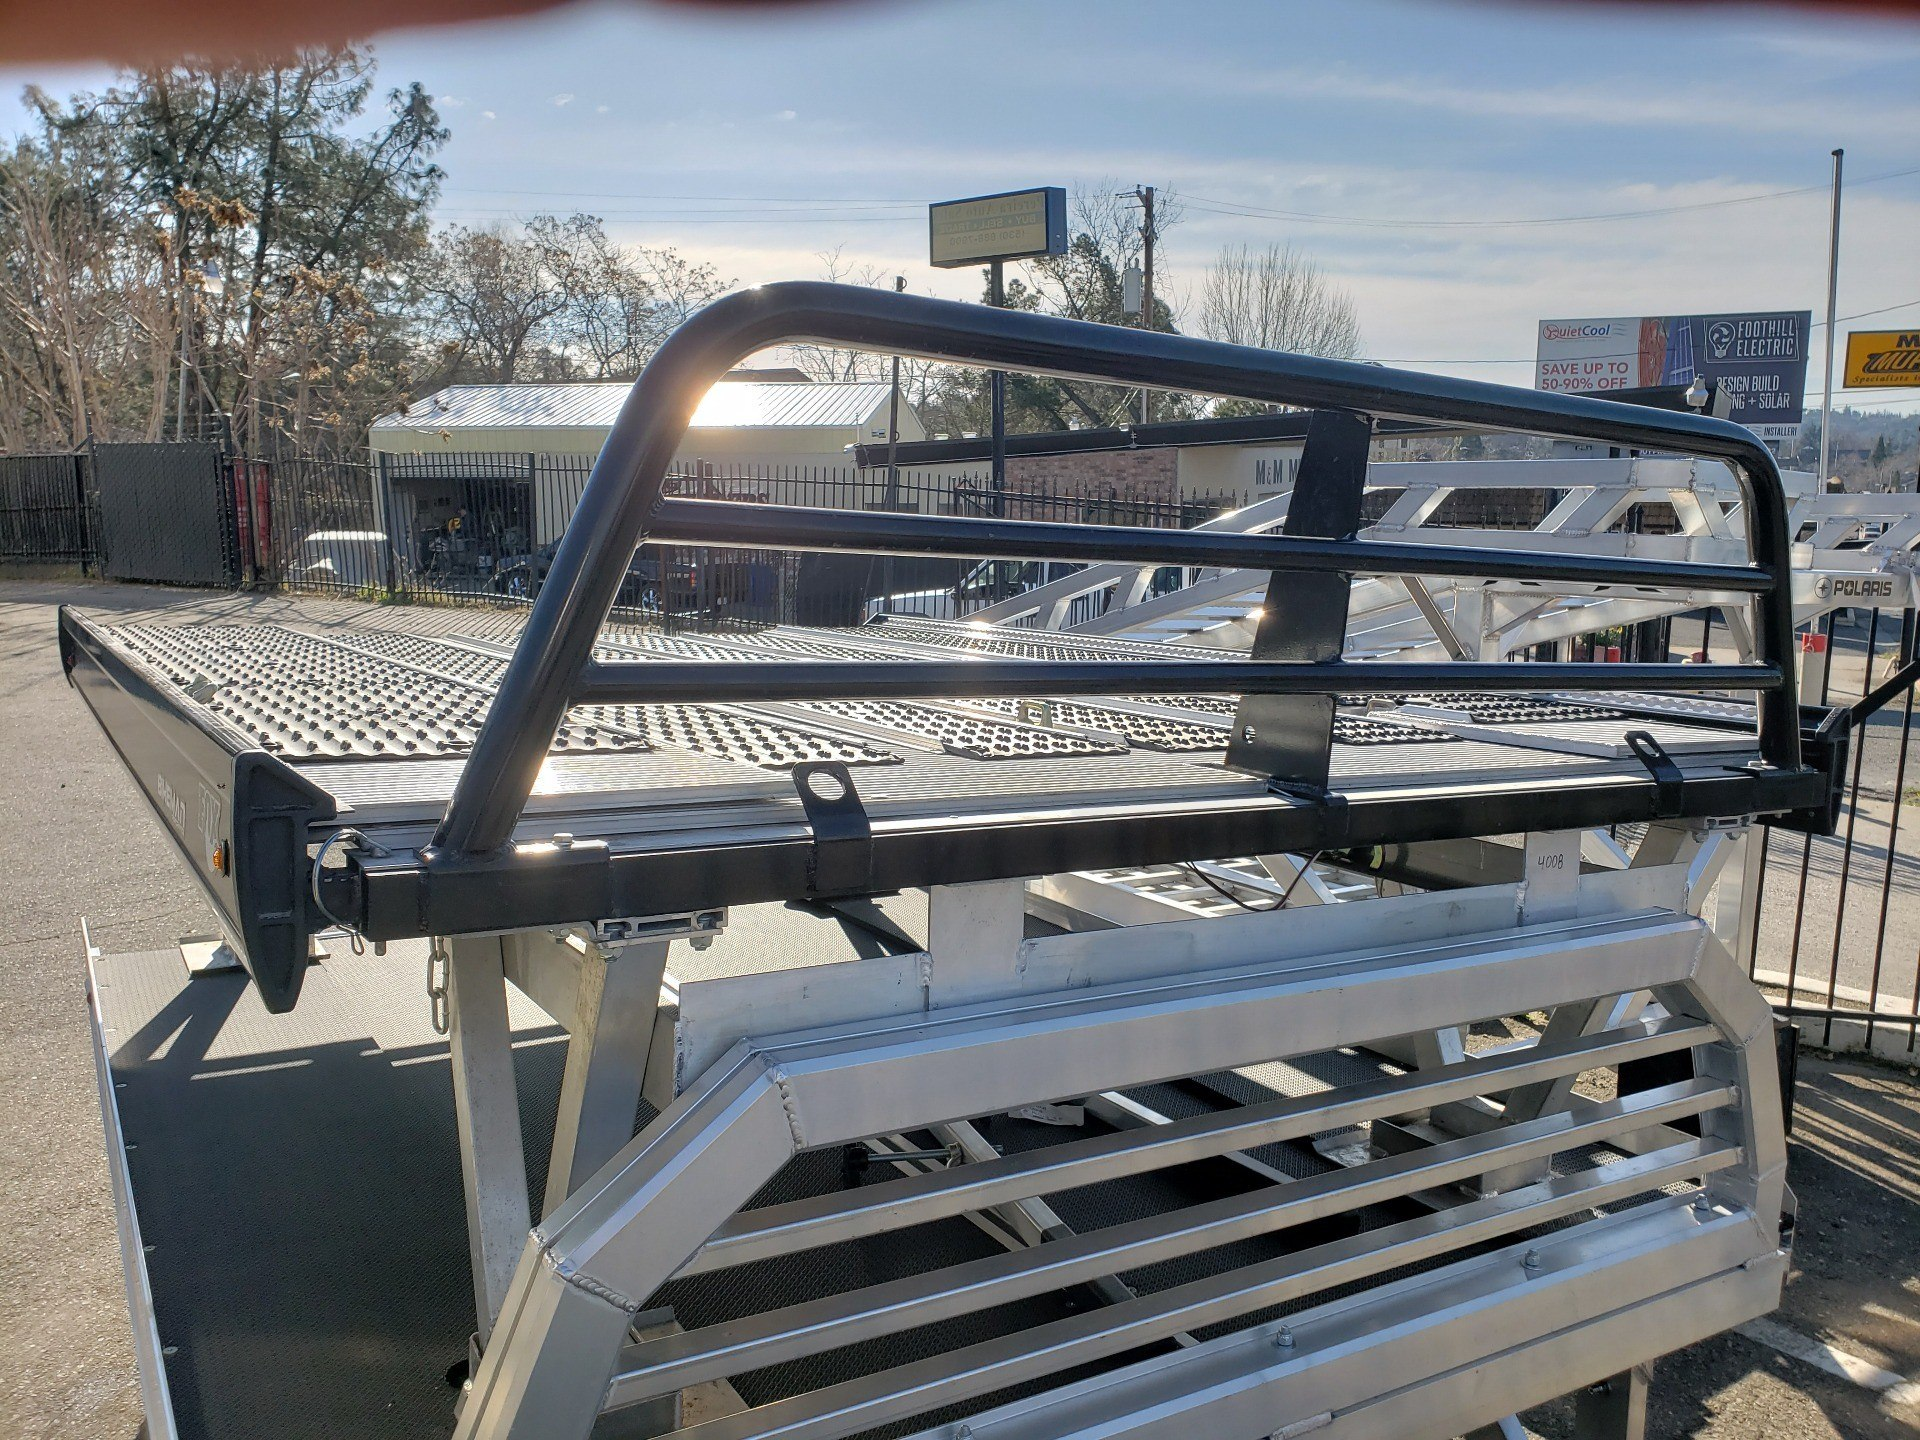 2019 Marlin ExplorePro Sled Deck in Auburn, California - Photo 6